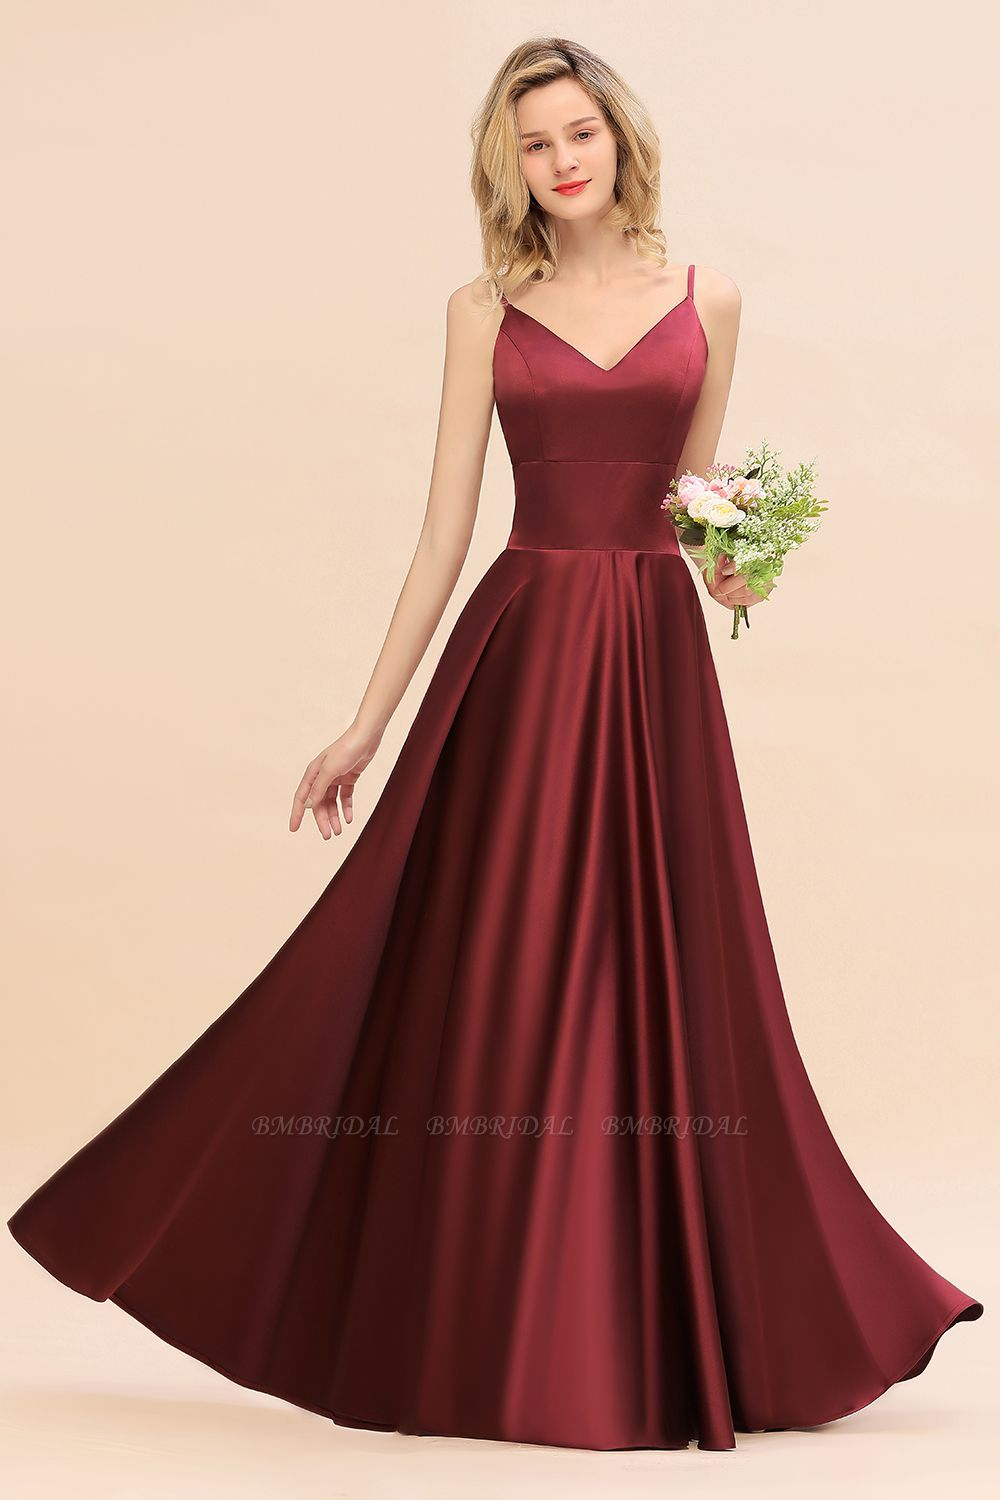 Chic Spaghetti-Straps Burgundy Satin Long Bridesmaid Dress Online